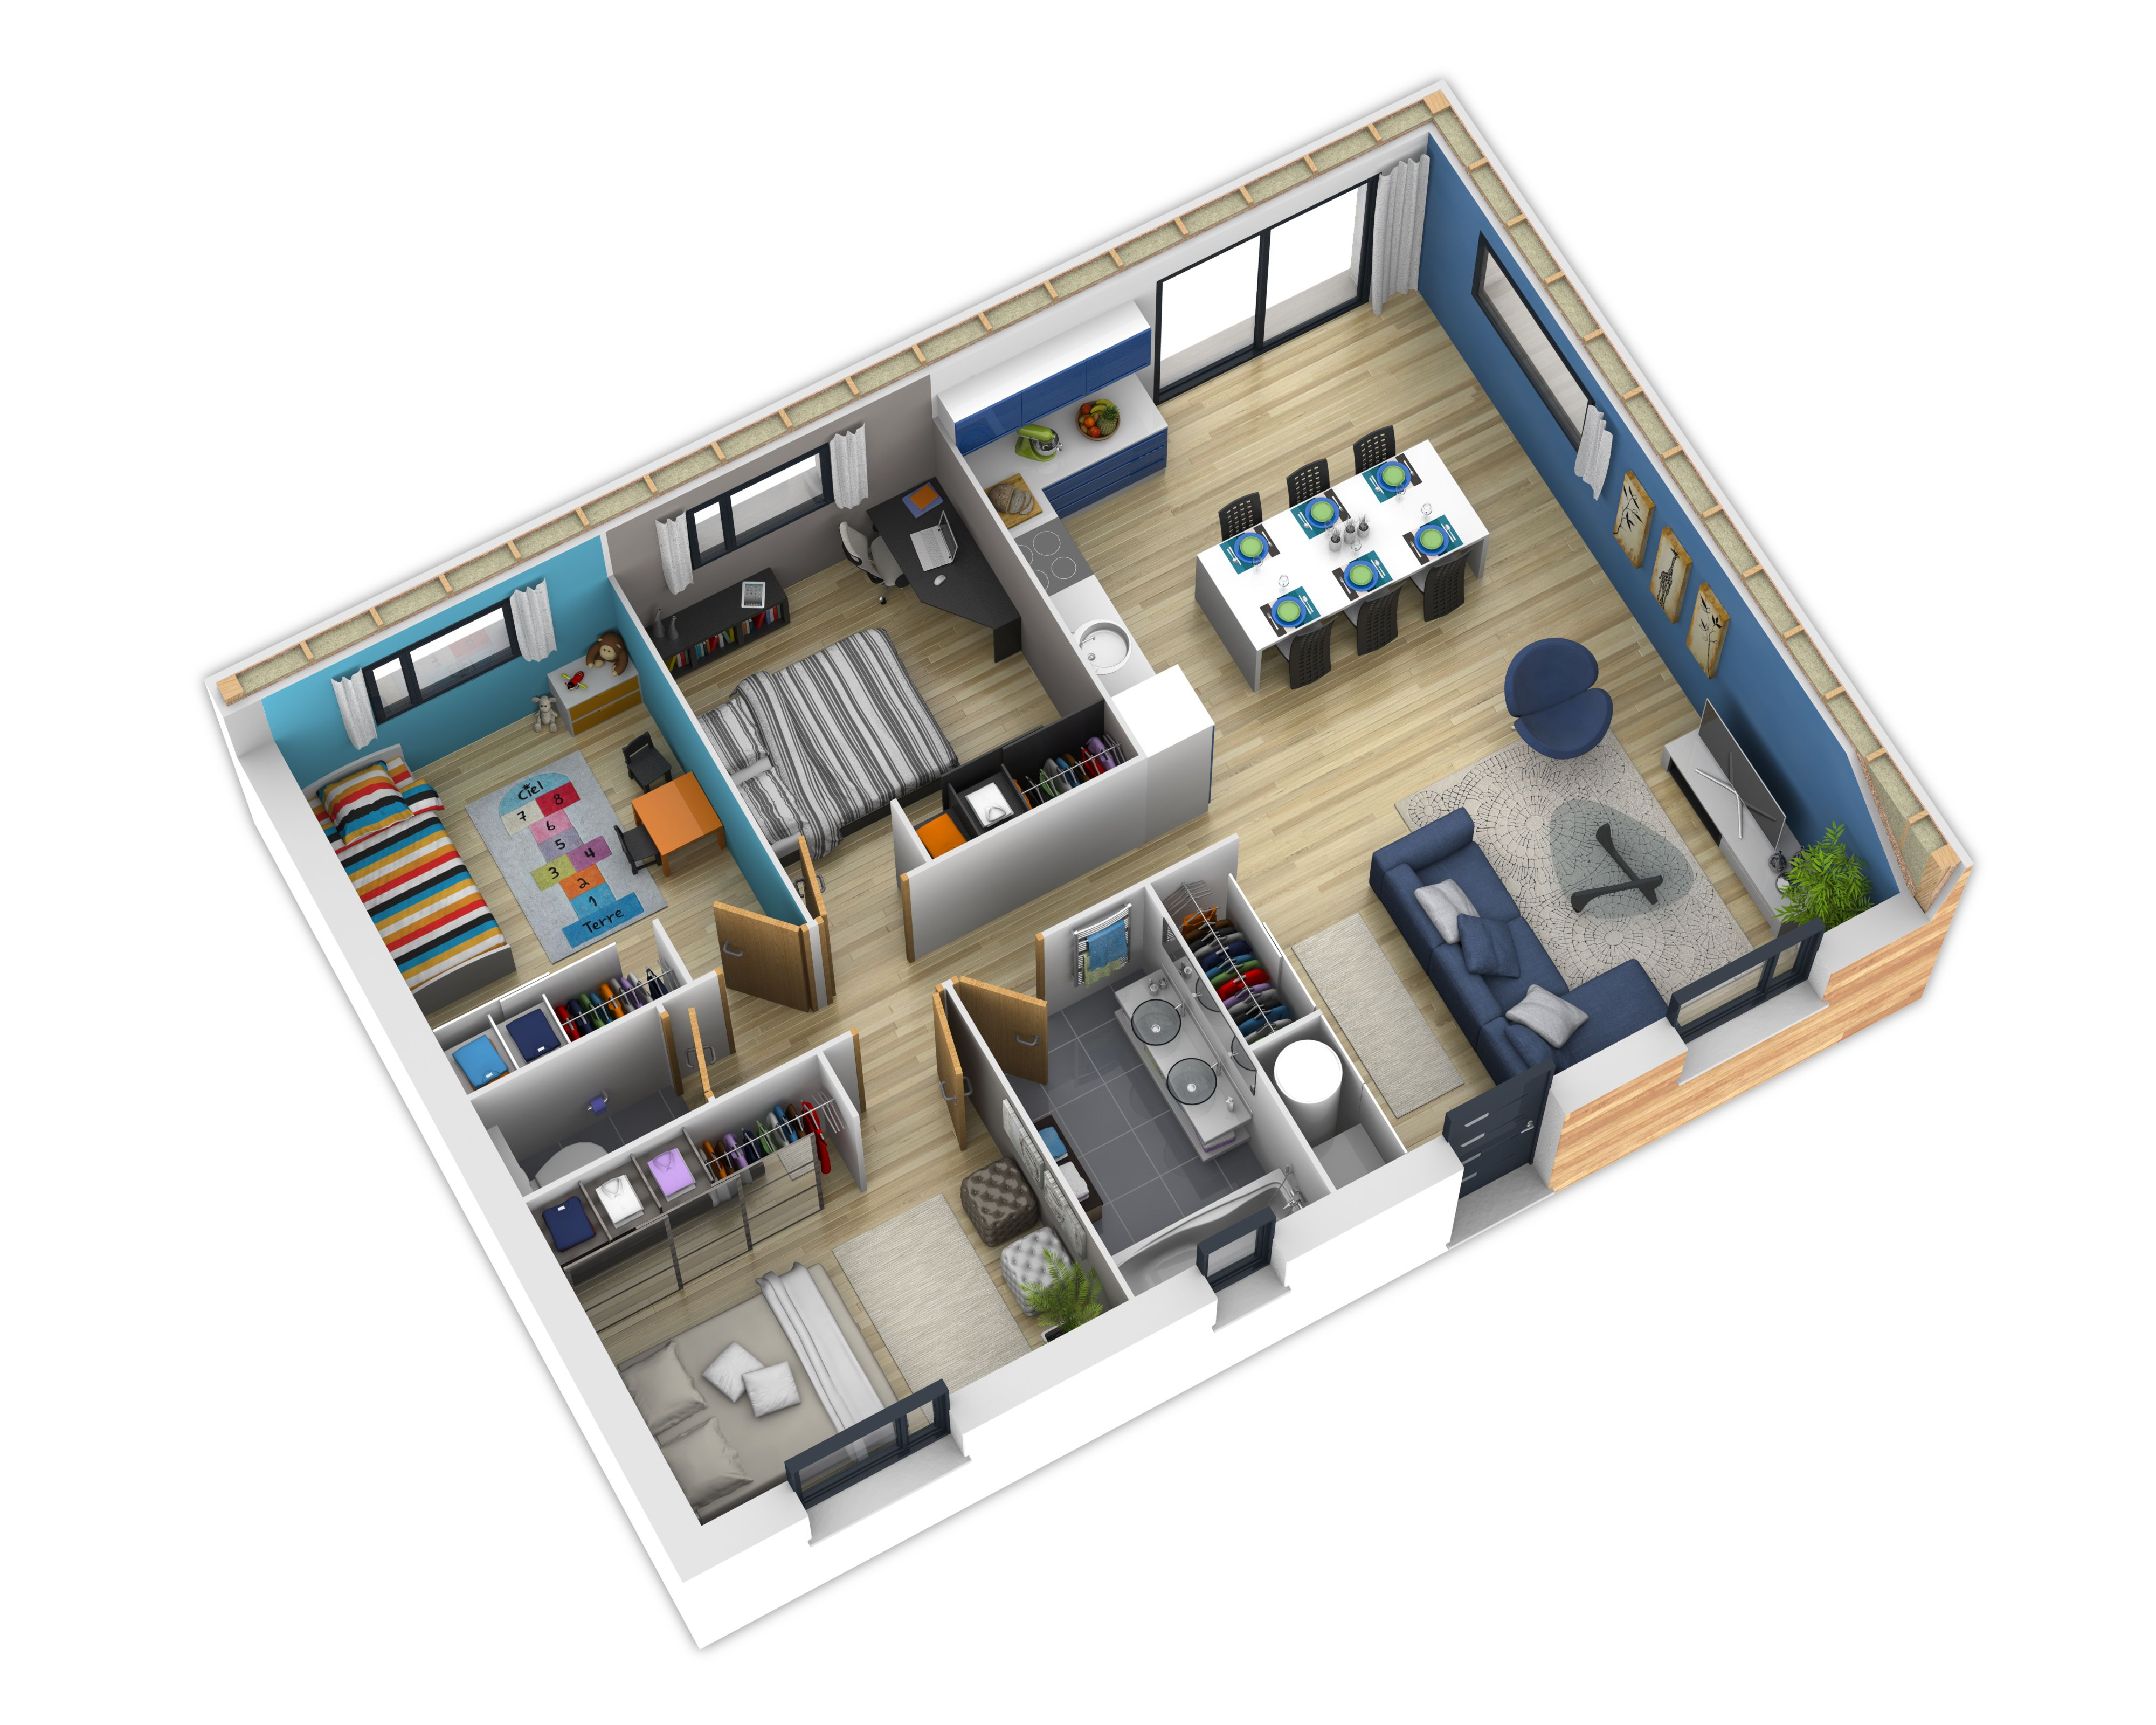 Plan Interieur Maison Moderne Plan Intérieur Home Floor 3d Plans House Plans Container